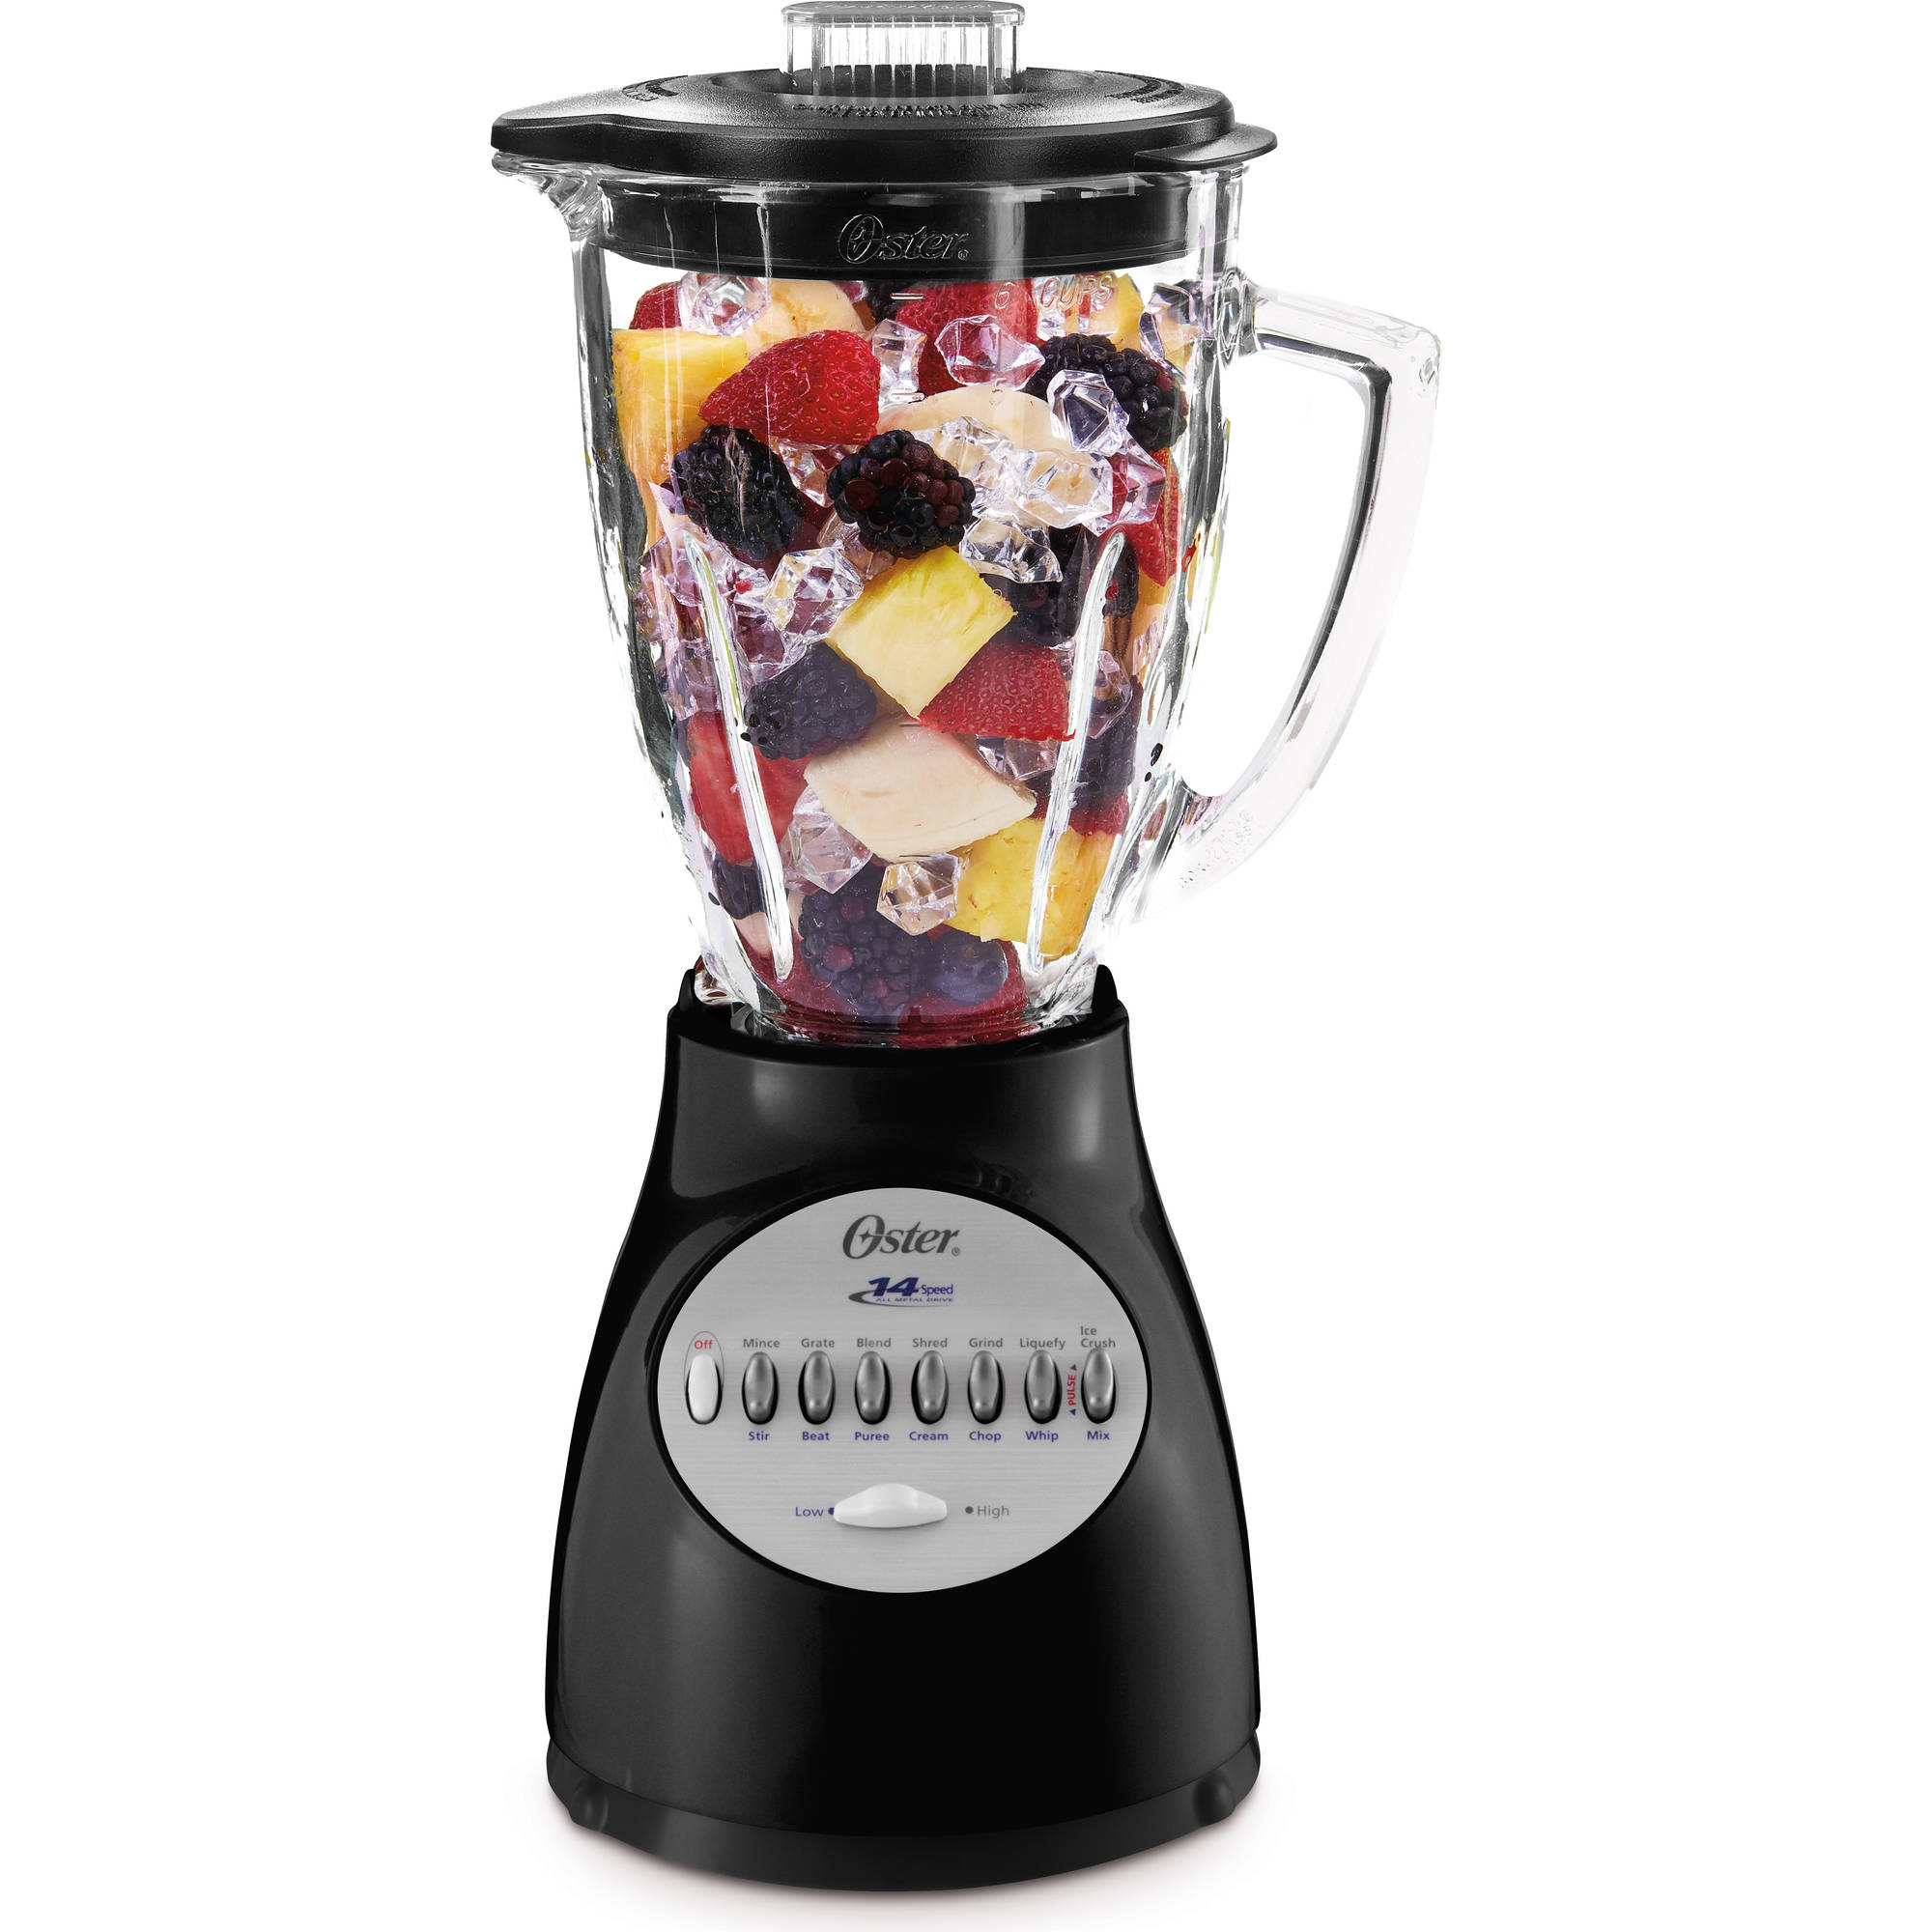 Kenstar Magna W Mixer Grinder is the Perfect Help in the Kitchen If you are too much into cooking various dishes, then you definitely. Kenstar Magna W Mixer Grinder is the Perfect Help in the Kitchen If you are too much into cooking various dishes, then you definitely.